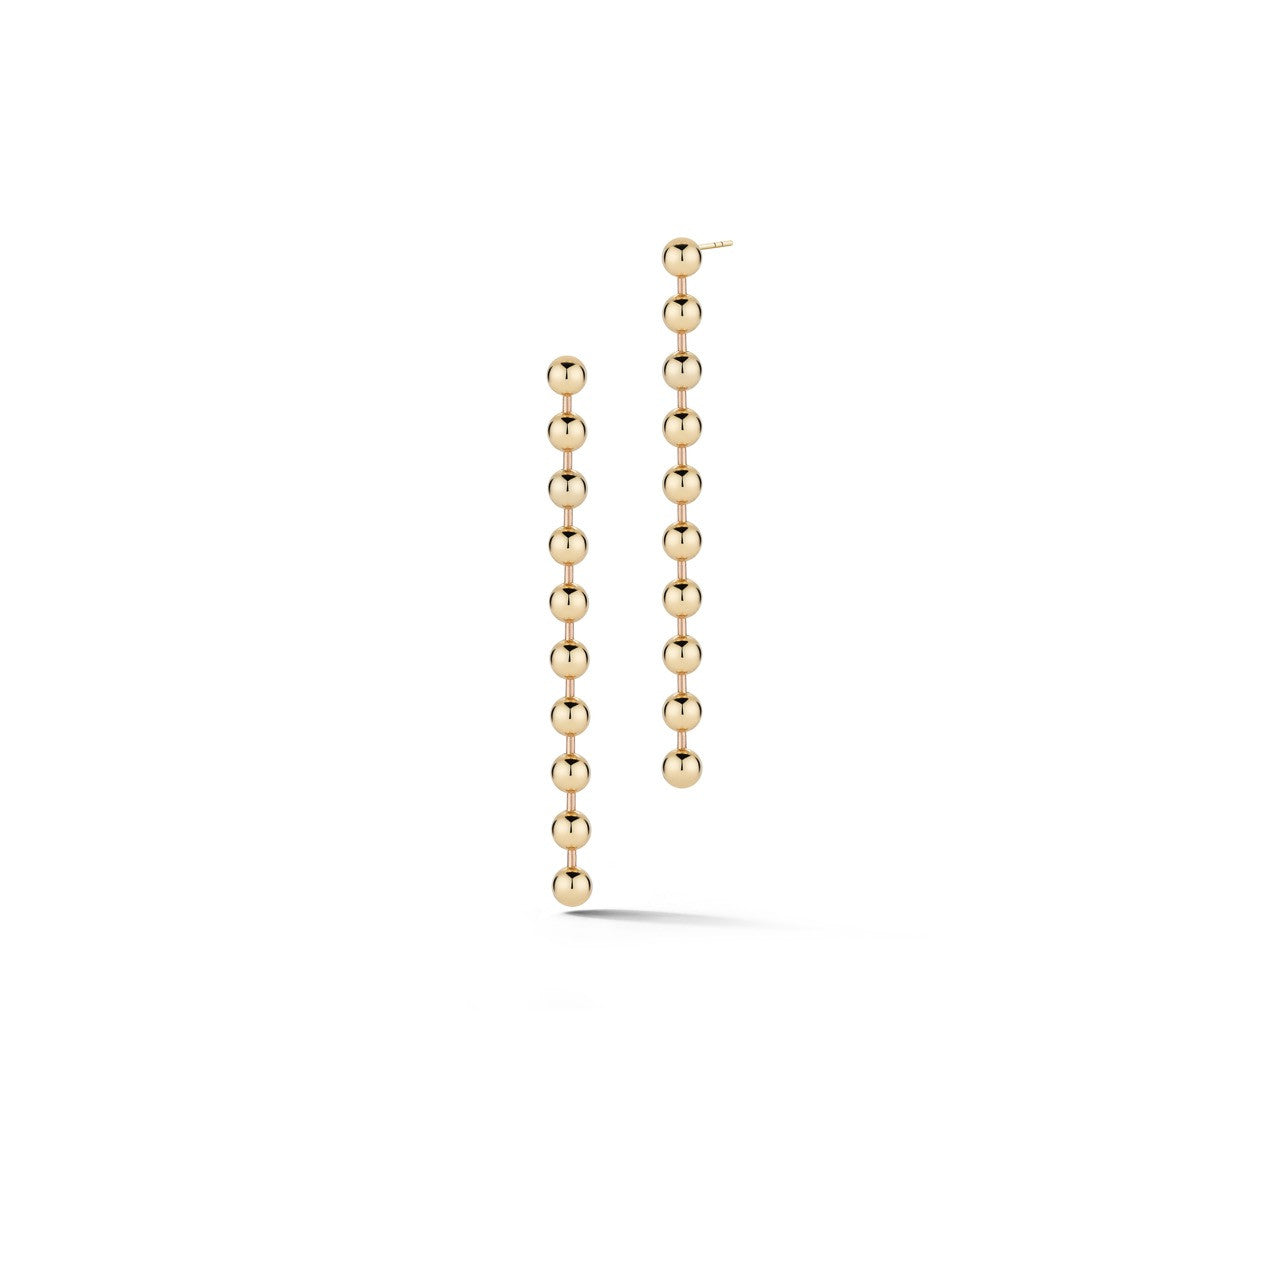 light day to night ball chain earrings in 14k gold by finn by candice pool neistat